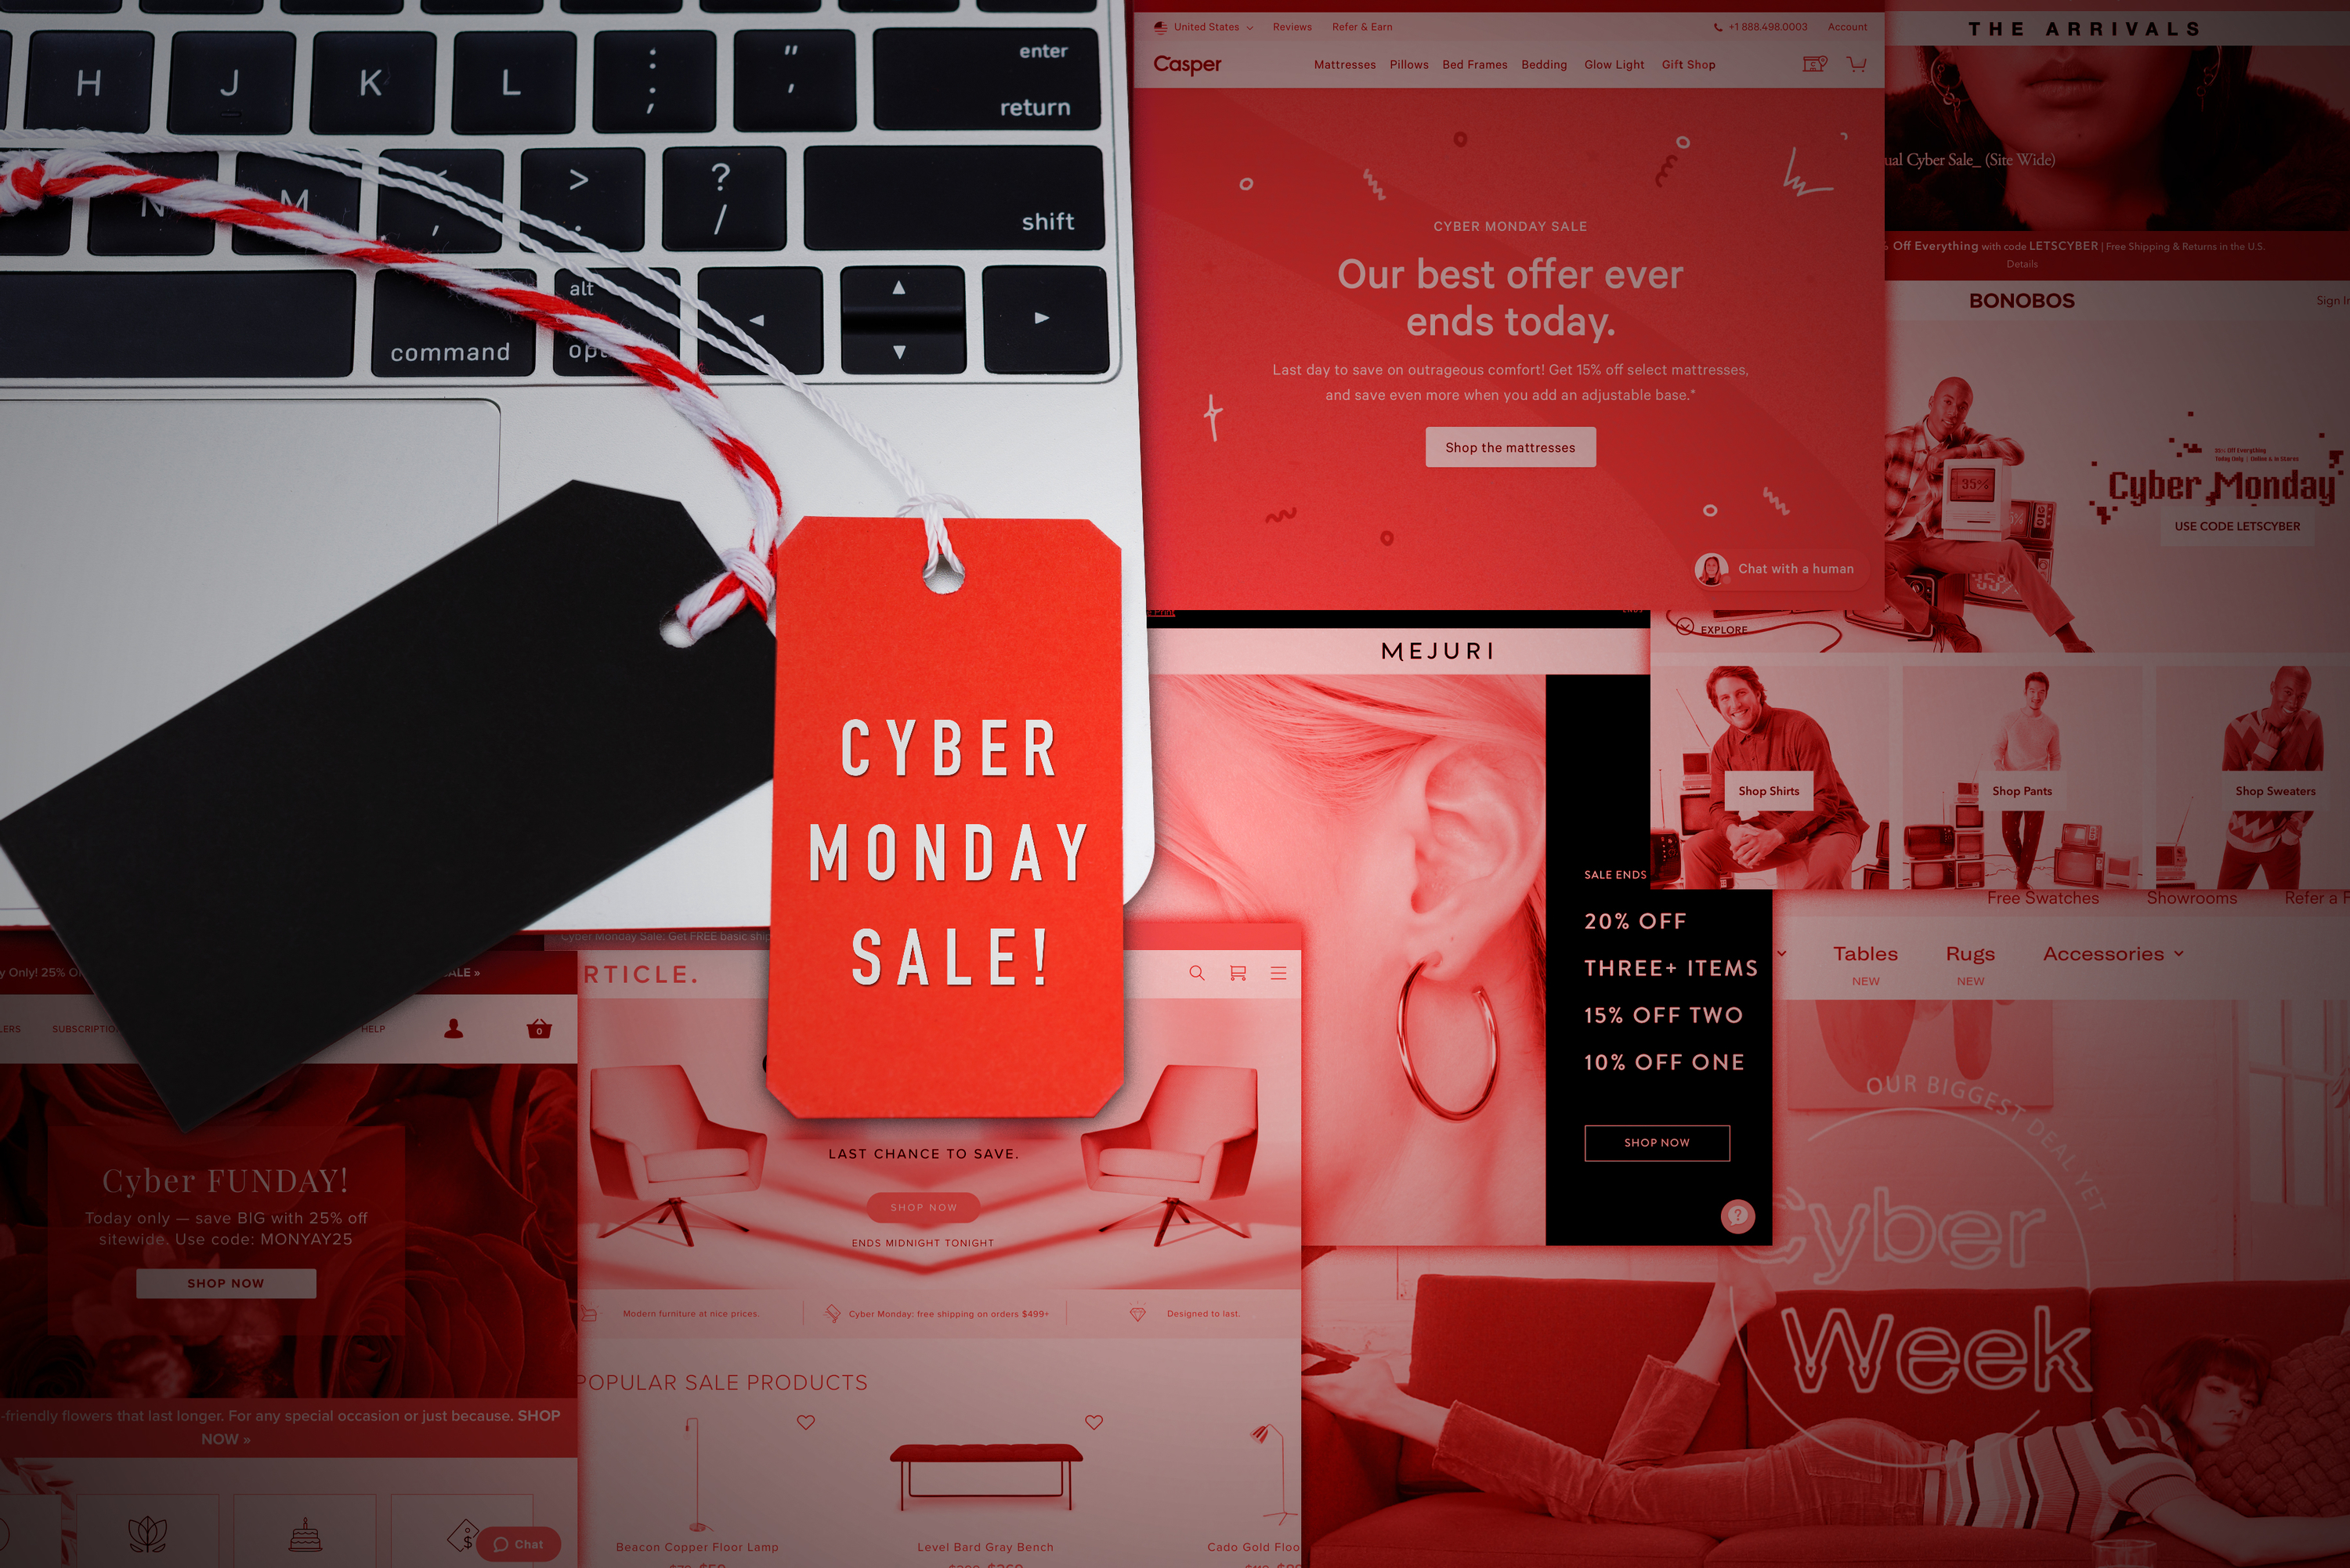 Cyber Monday brings onslaught of discounts from both big retailers and DTC brands